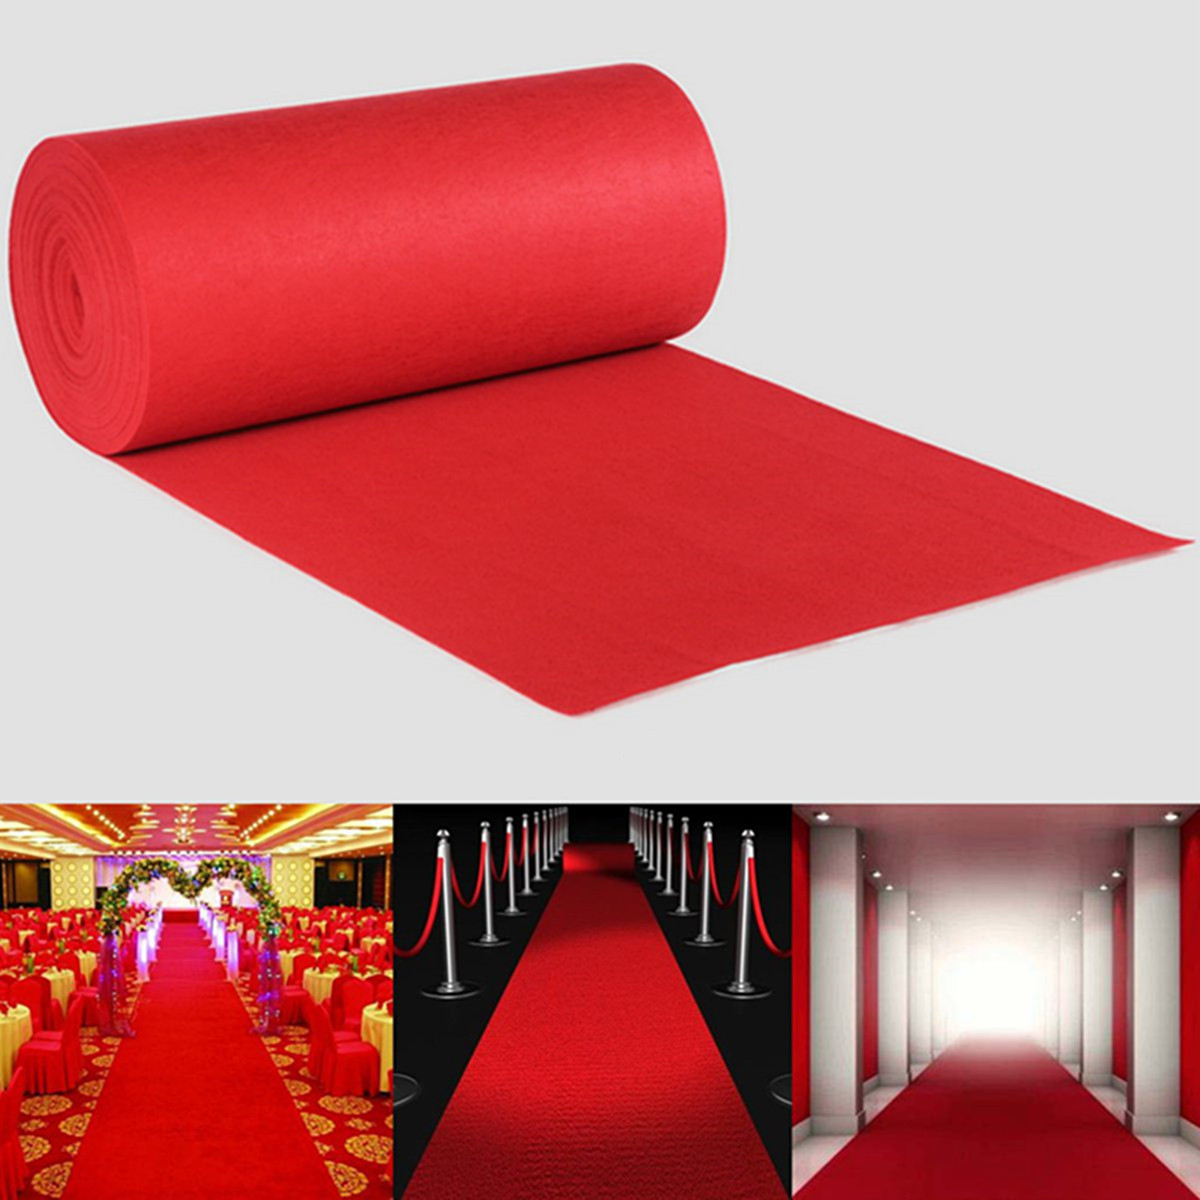 15X1.2M Wedding Aisle Floor Runner Carpet Polyester Large Red Carpet Rug Hollywood Awards Events Wedding Party Events Decoration